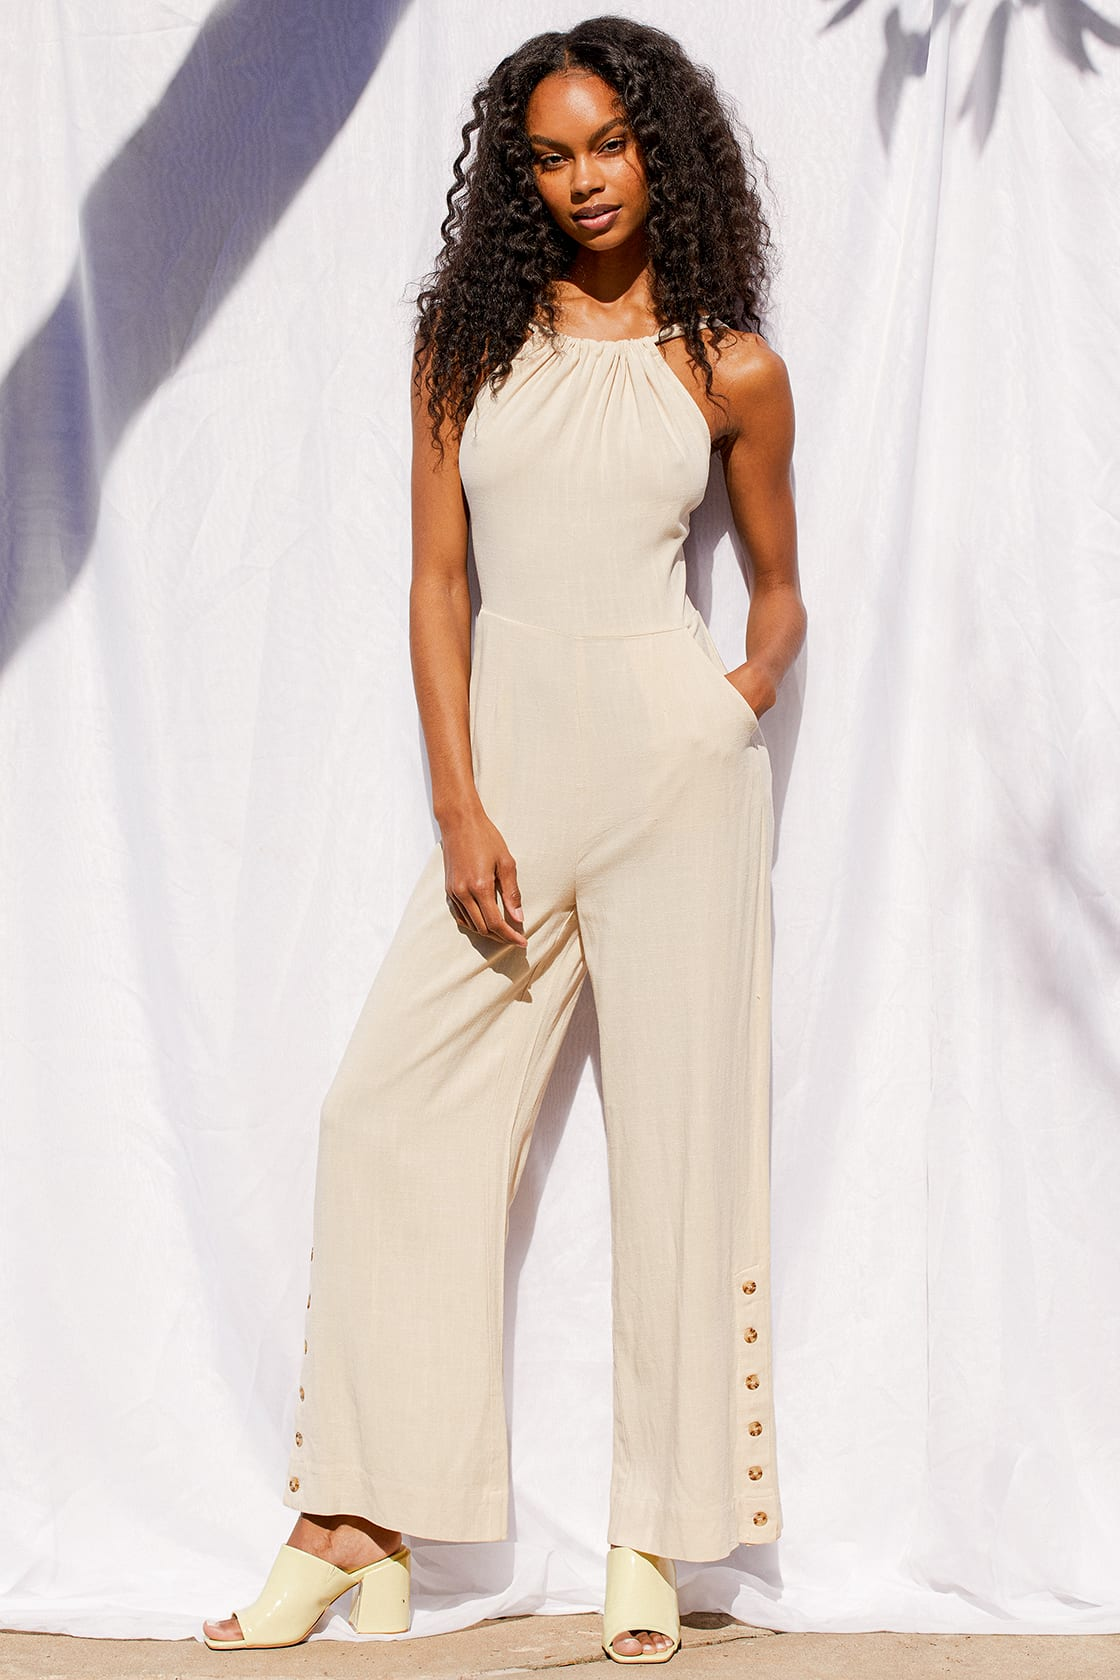 What To Wear To A Boat Party: Cream jumpsuit